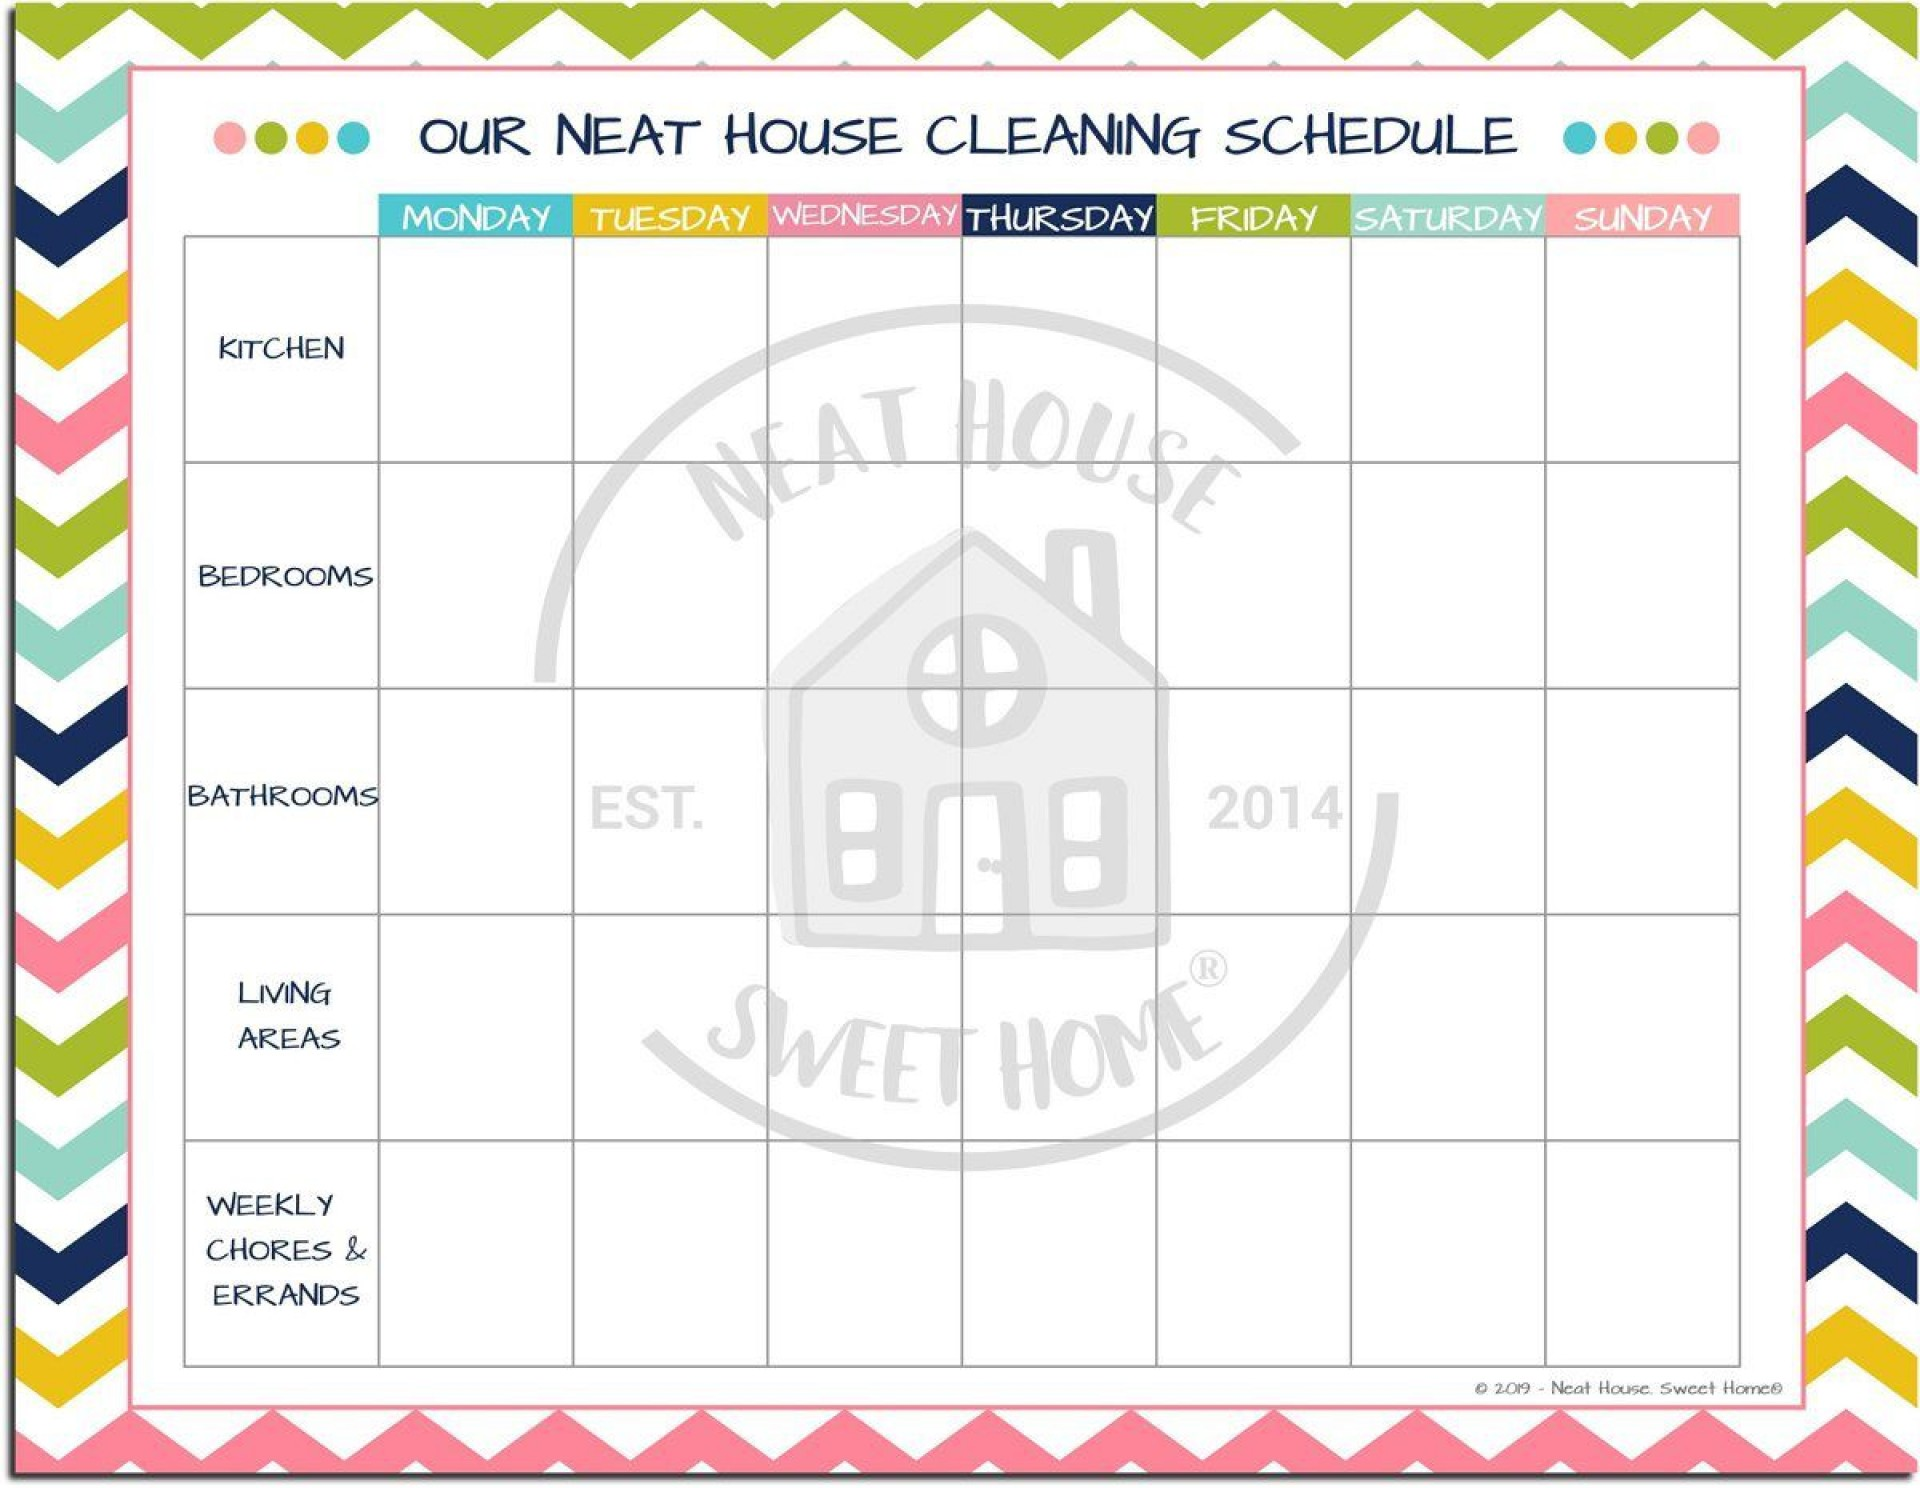 010 Beautiful Weekly Cleaning Schedule Format High Def  Template Free Sample1920